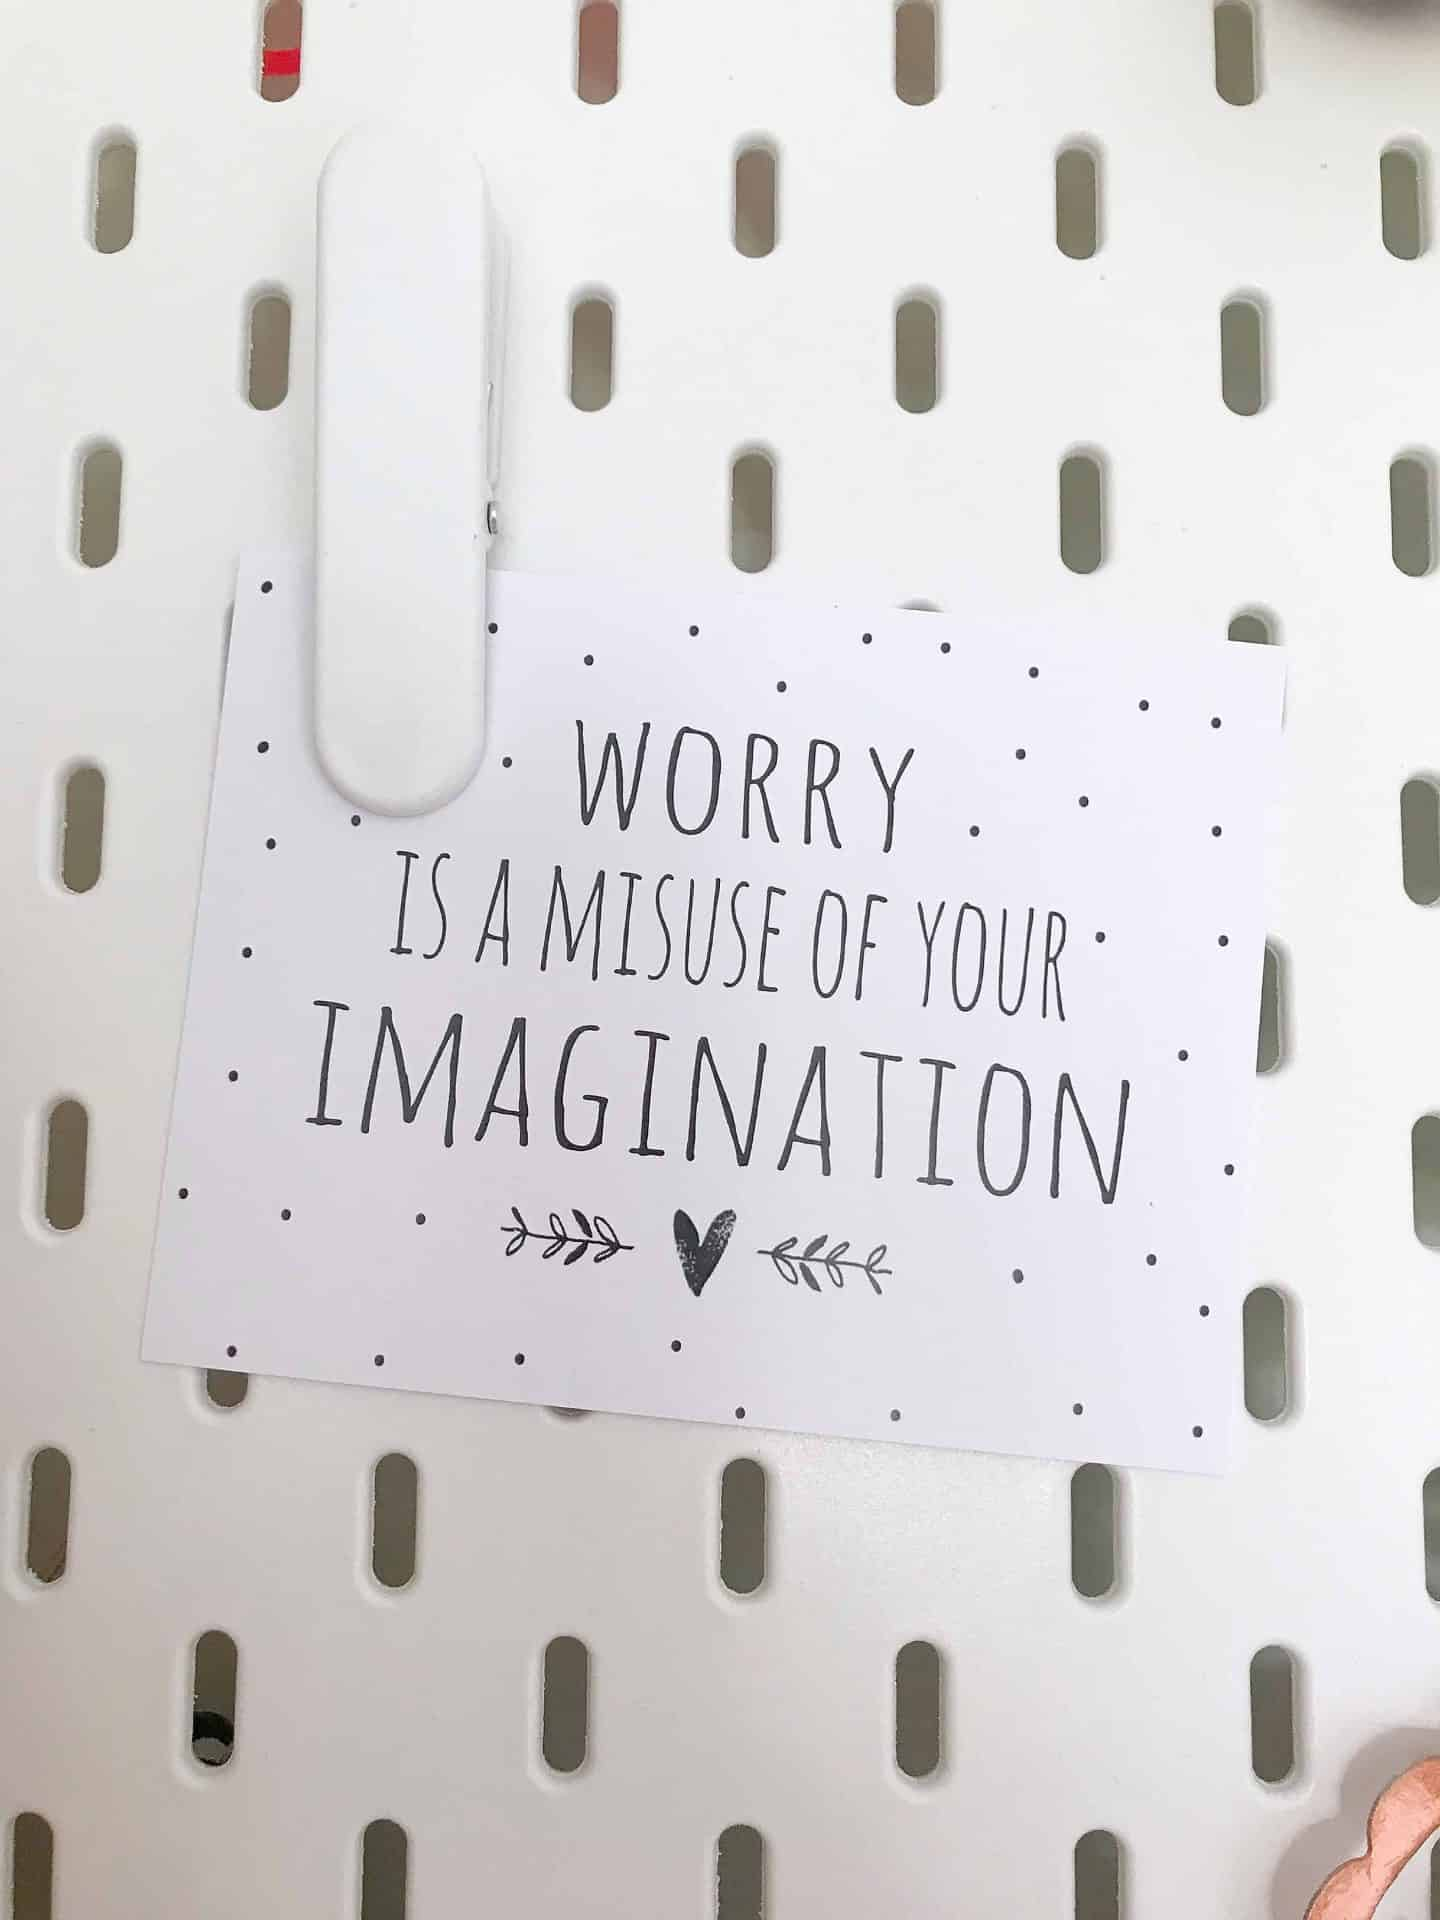 Worry is a misuse of your imagination card